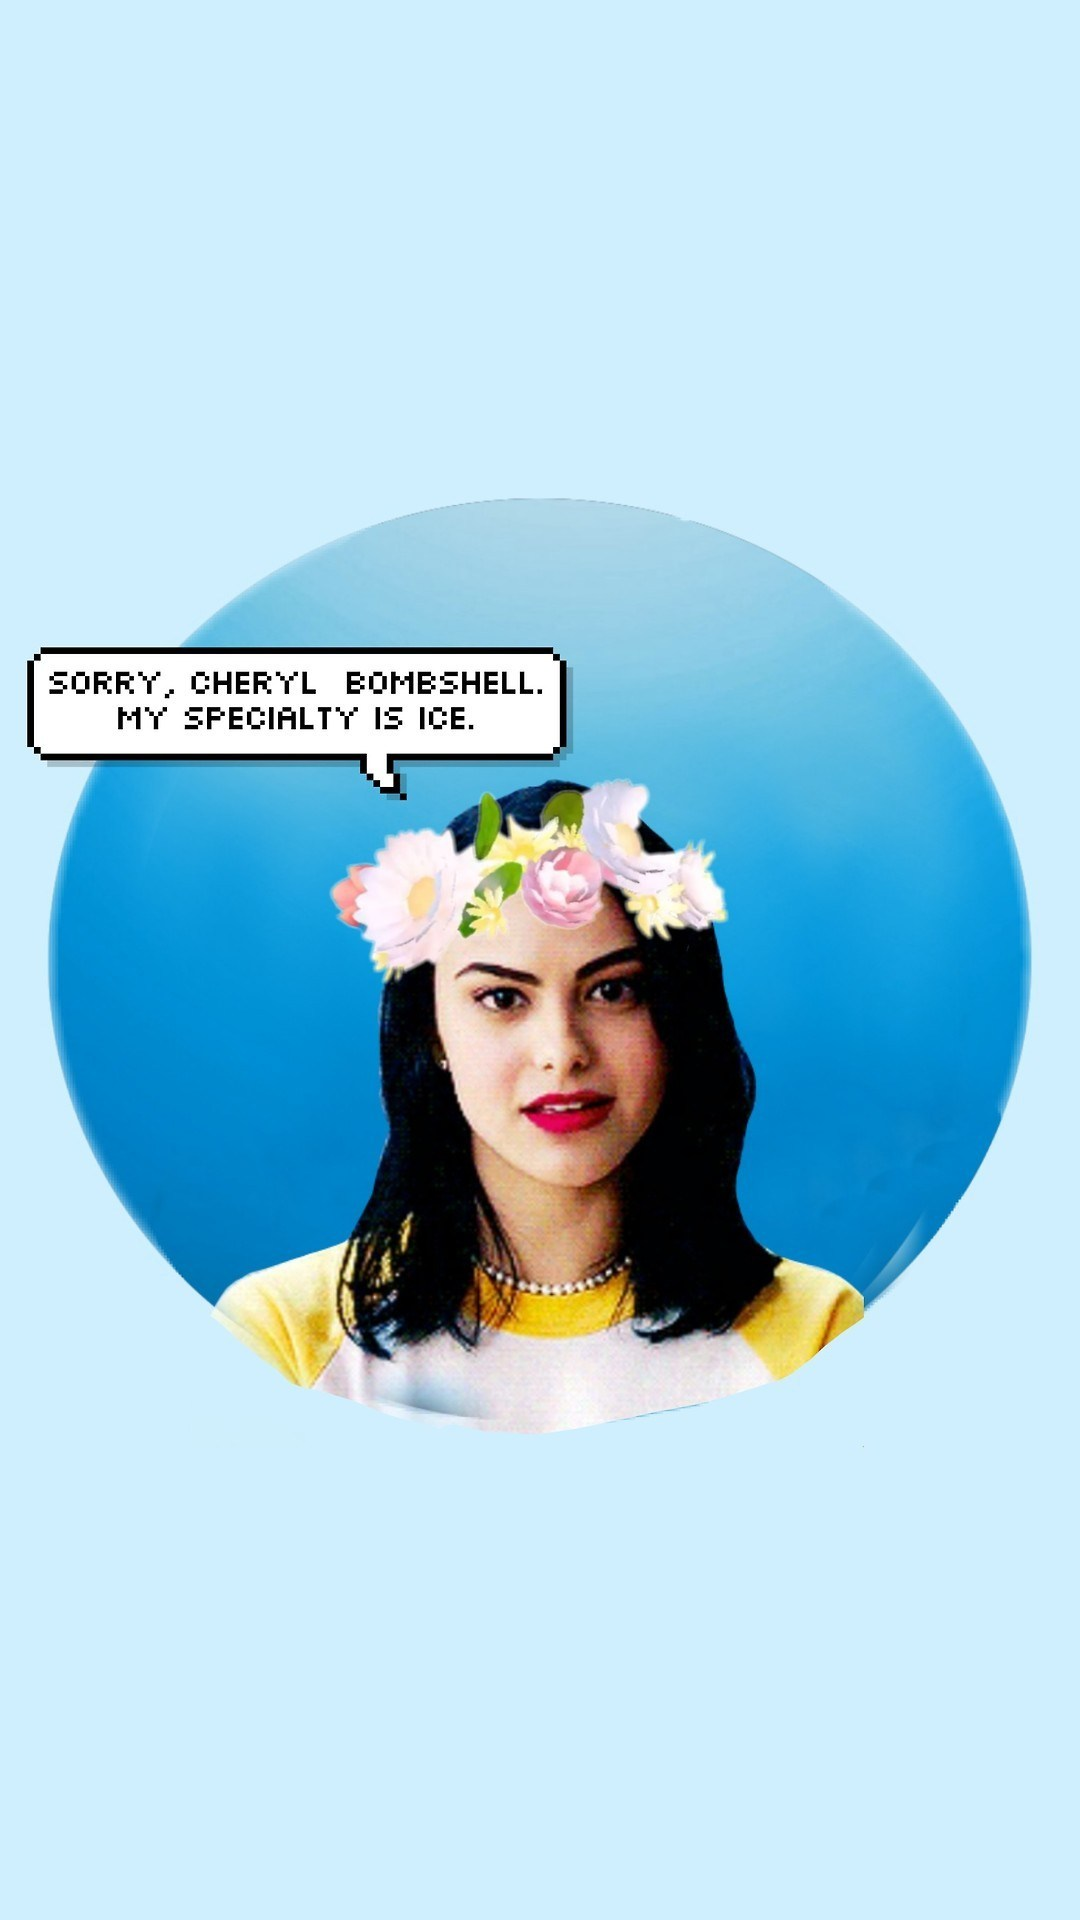 Riverdale Wallpaper Group Pictures42 Aesthetic Riverdale 230720 Hd Wallpaper Backgrounds Download